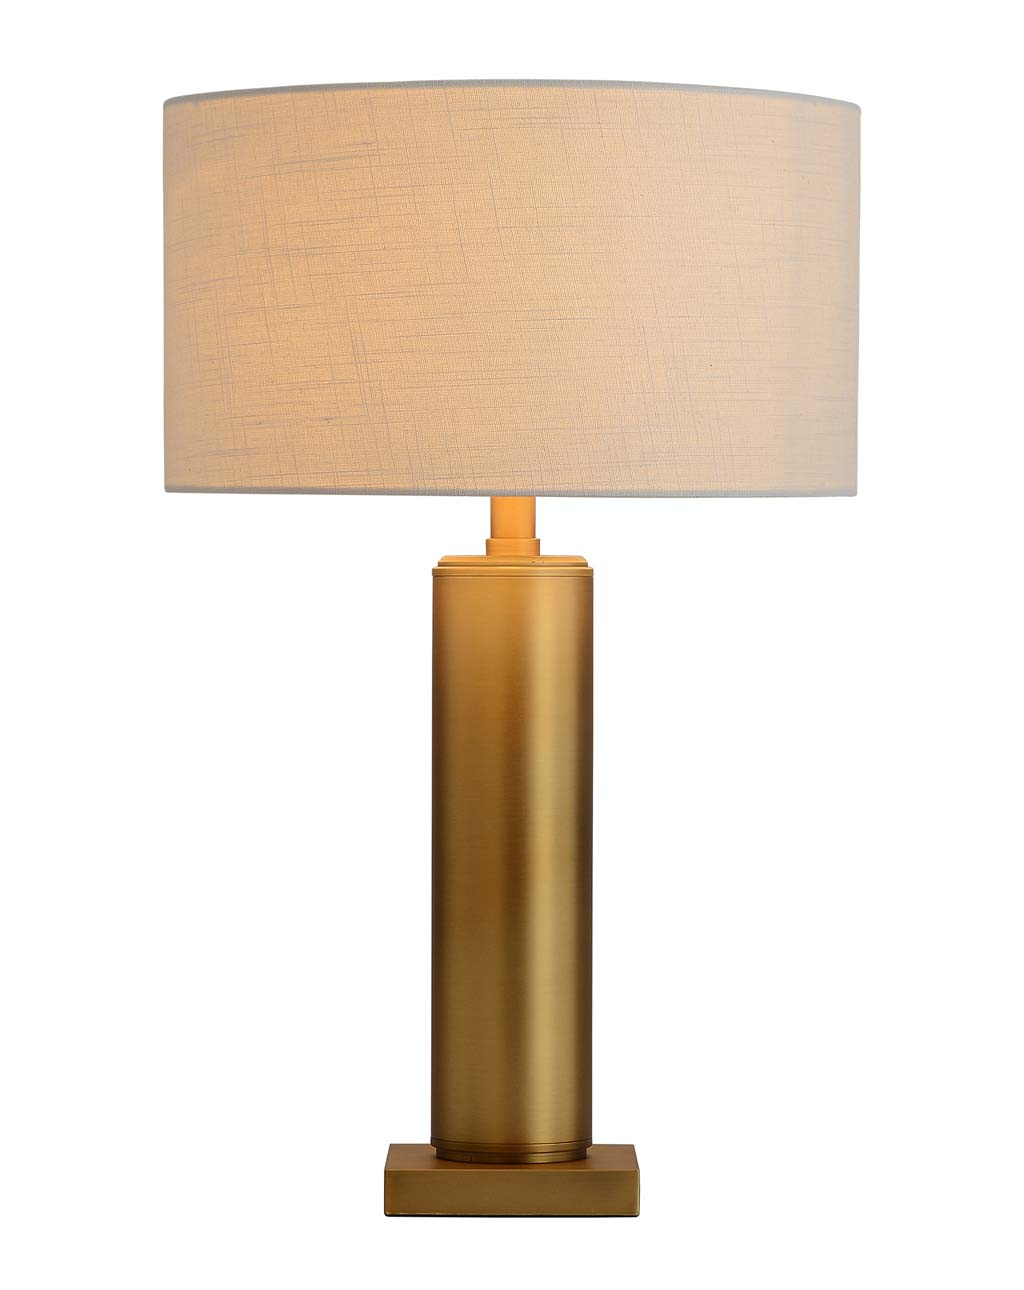 Brentwood Metal Column Table Lamp, Brushed Brass